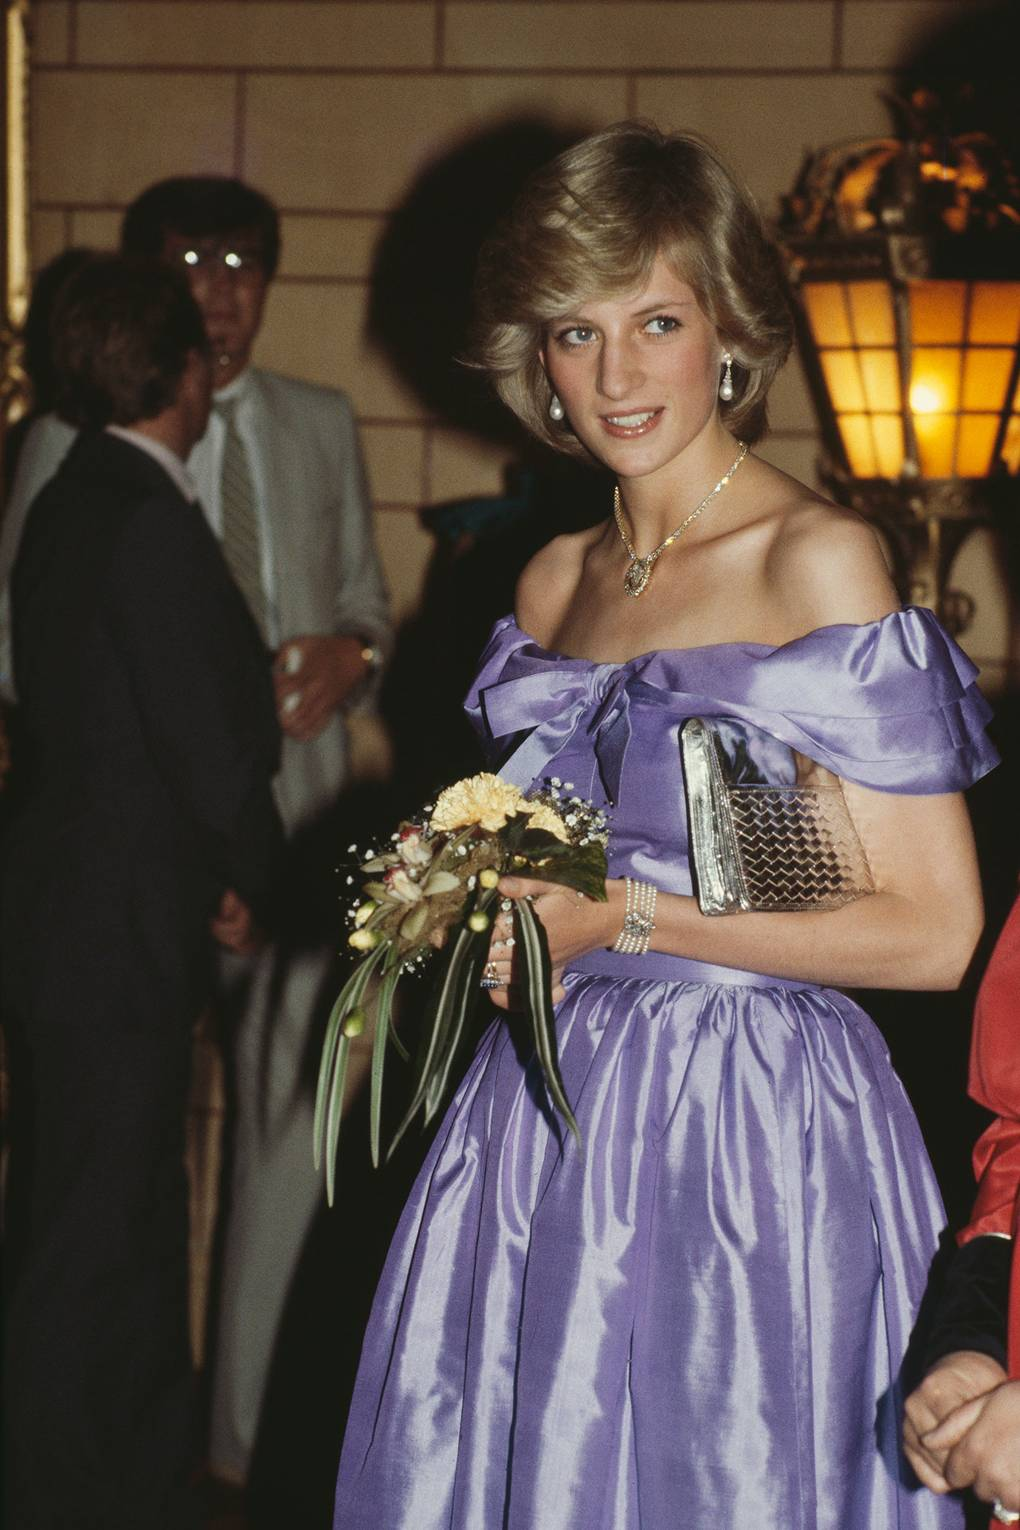 the best of princess diana and princes charles 1983 australia new zealand tour tatler the best of princess diana and princes